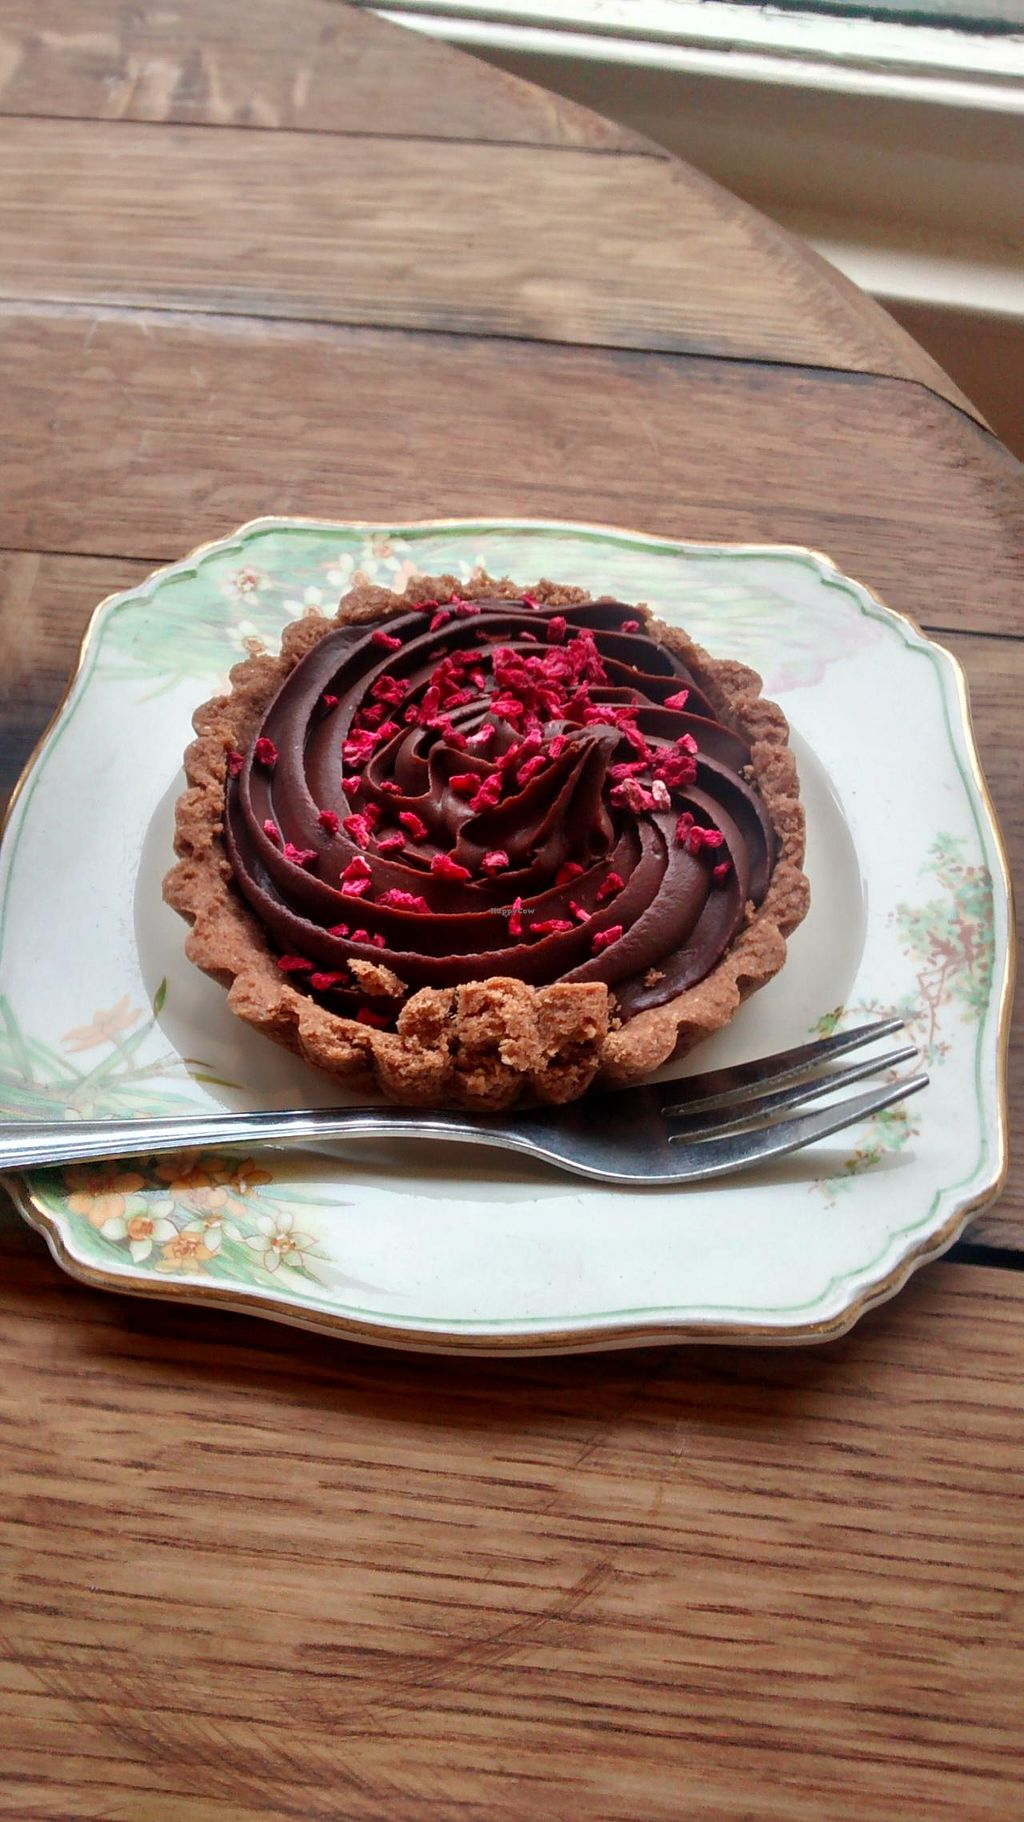 """Photo of The Chocolate Tree  by <a href=""""/members/profile/craigmc"""">craigmc</a> <br/>Vegan chocolate raspberry tart <br/> March 13, 2014  - <a href='/contact/abuse/image/27002/65821'>Report</a>"""